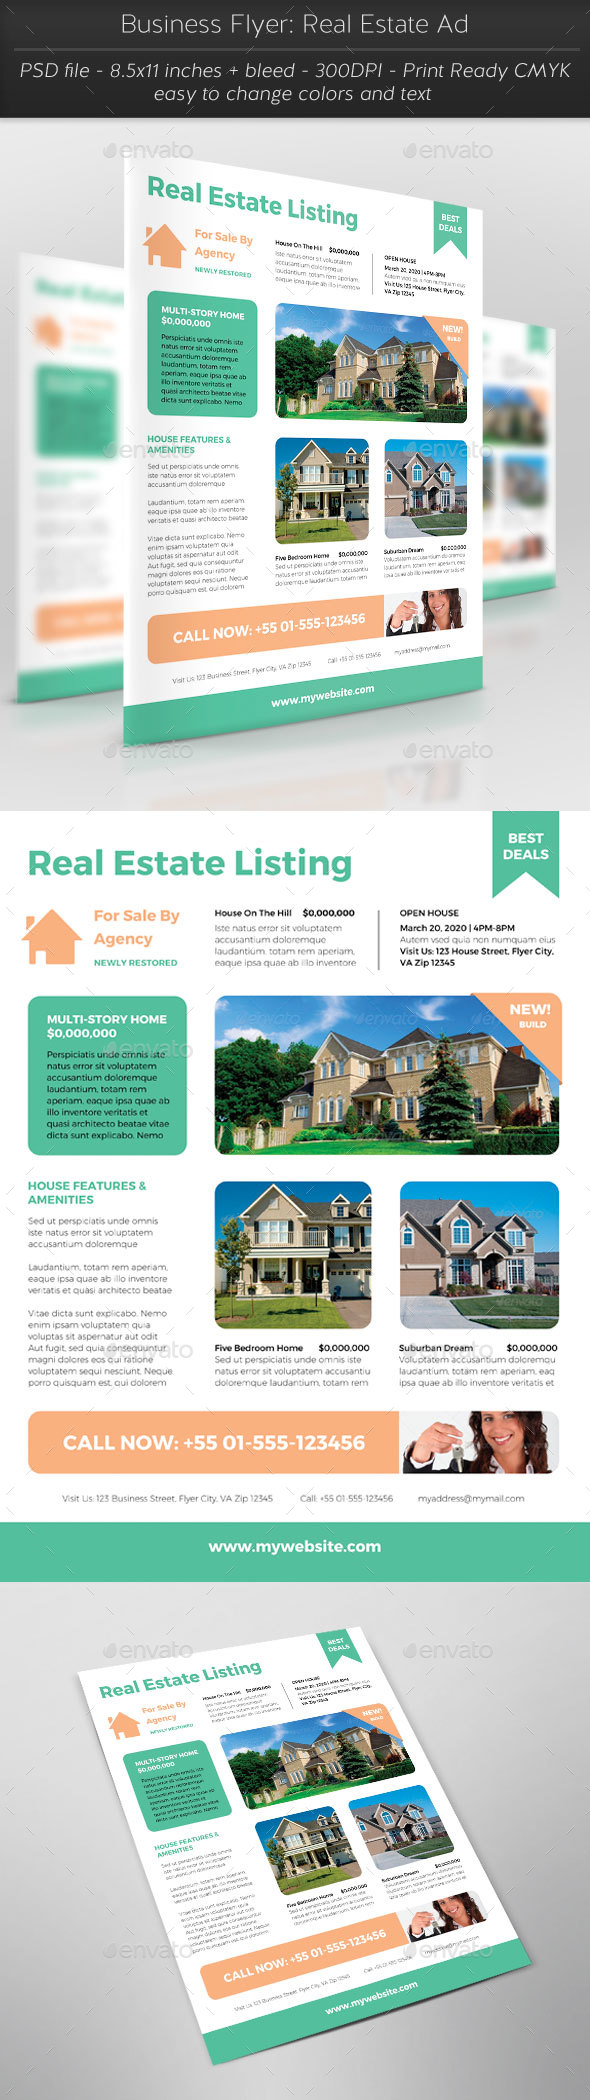 Business Flyer: Real Estate Ad